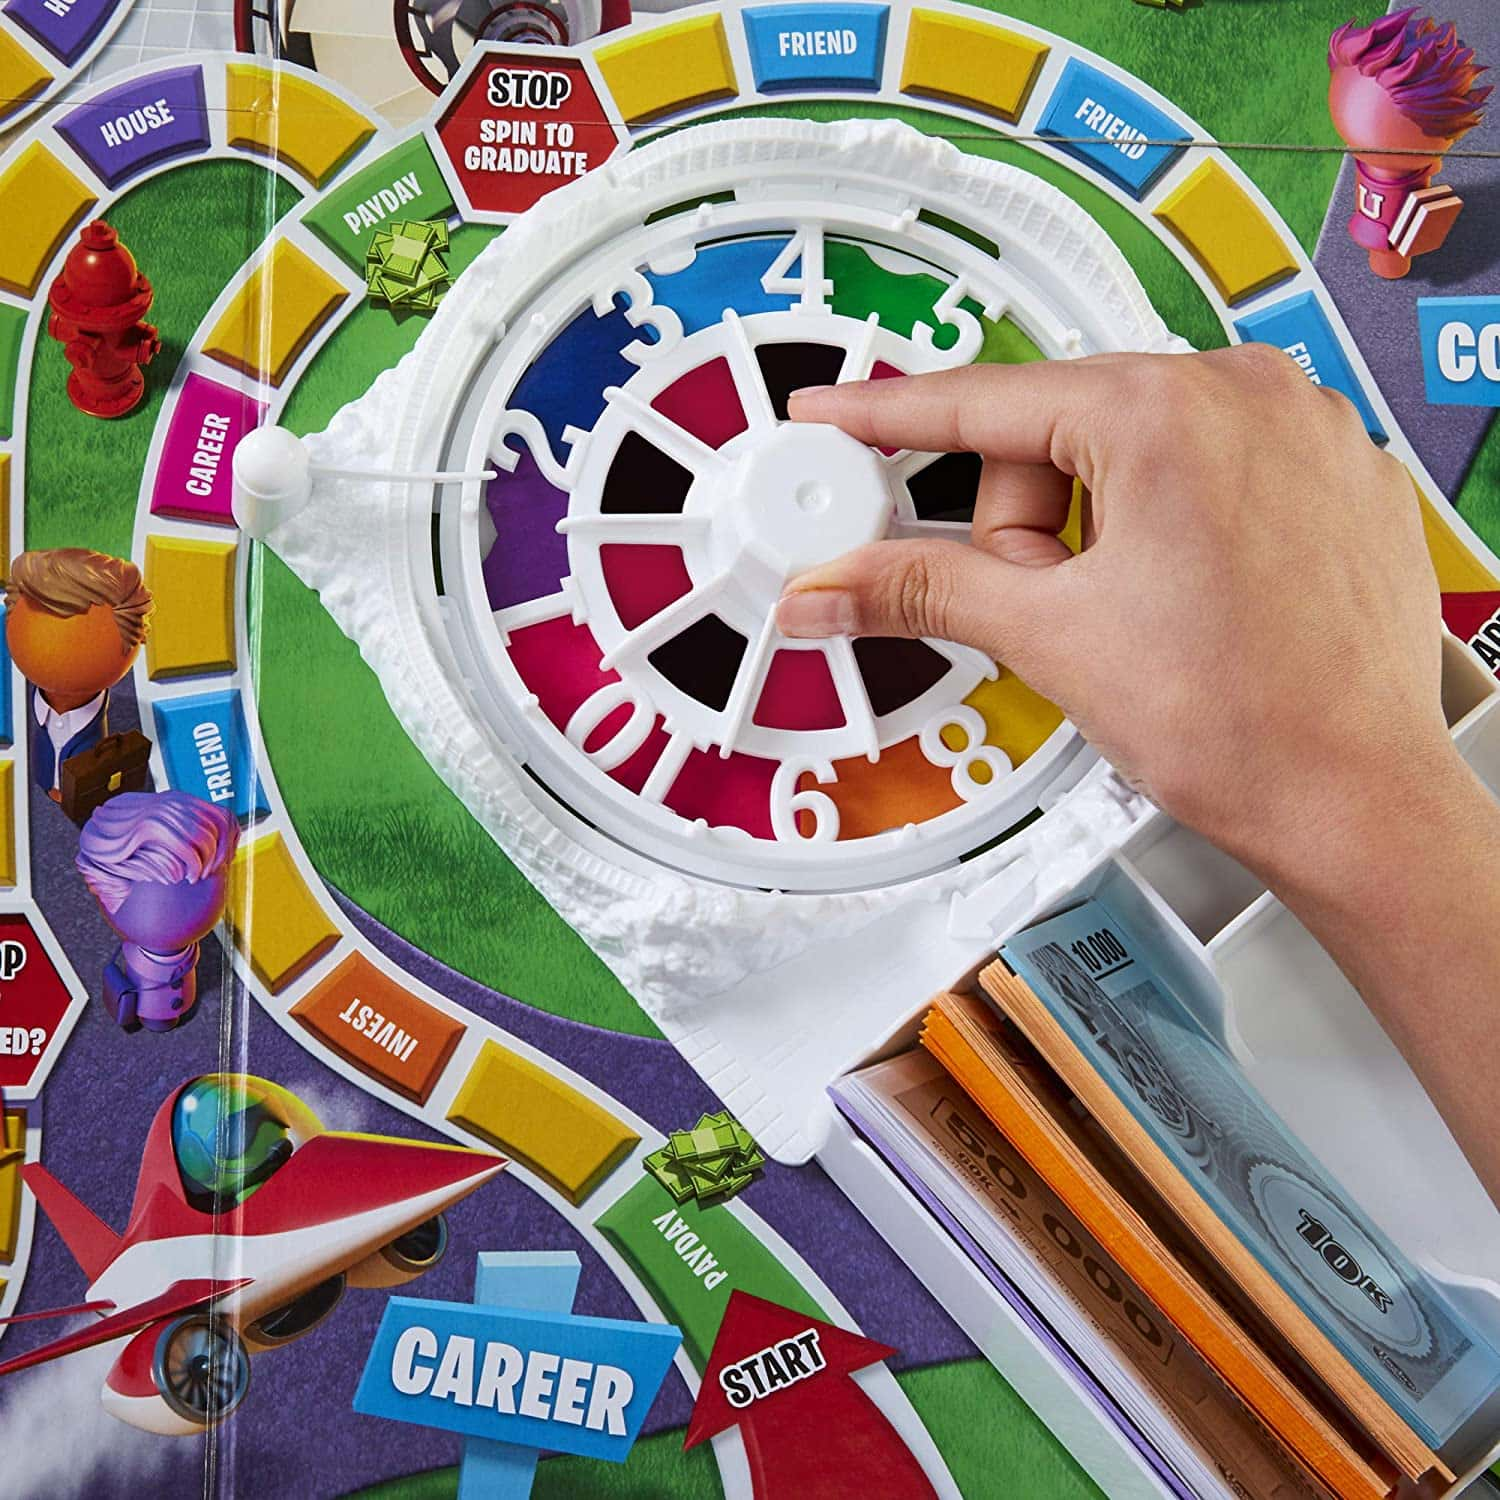 Game of Life 2021 'Your Life Your Way' in a lifestyle photoshoot with a close up the spinner and game board. Made by Hasbro Gaming